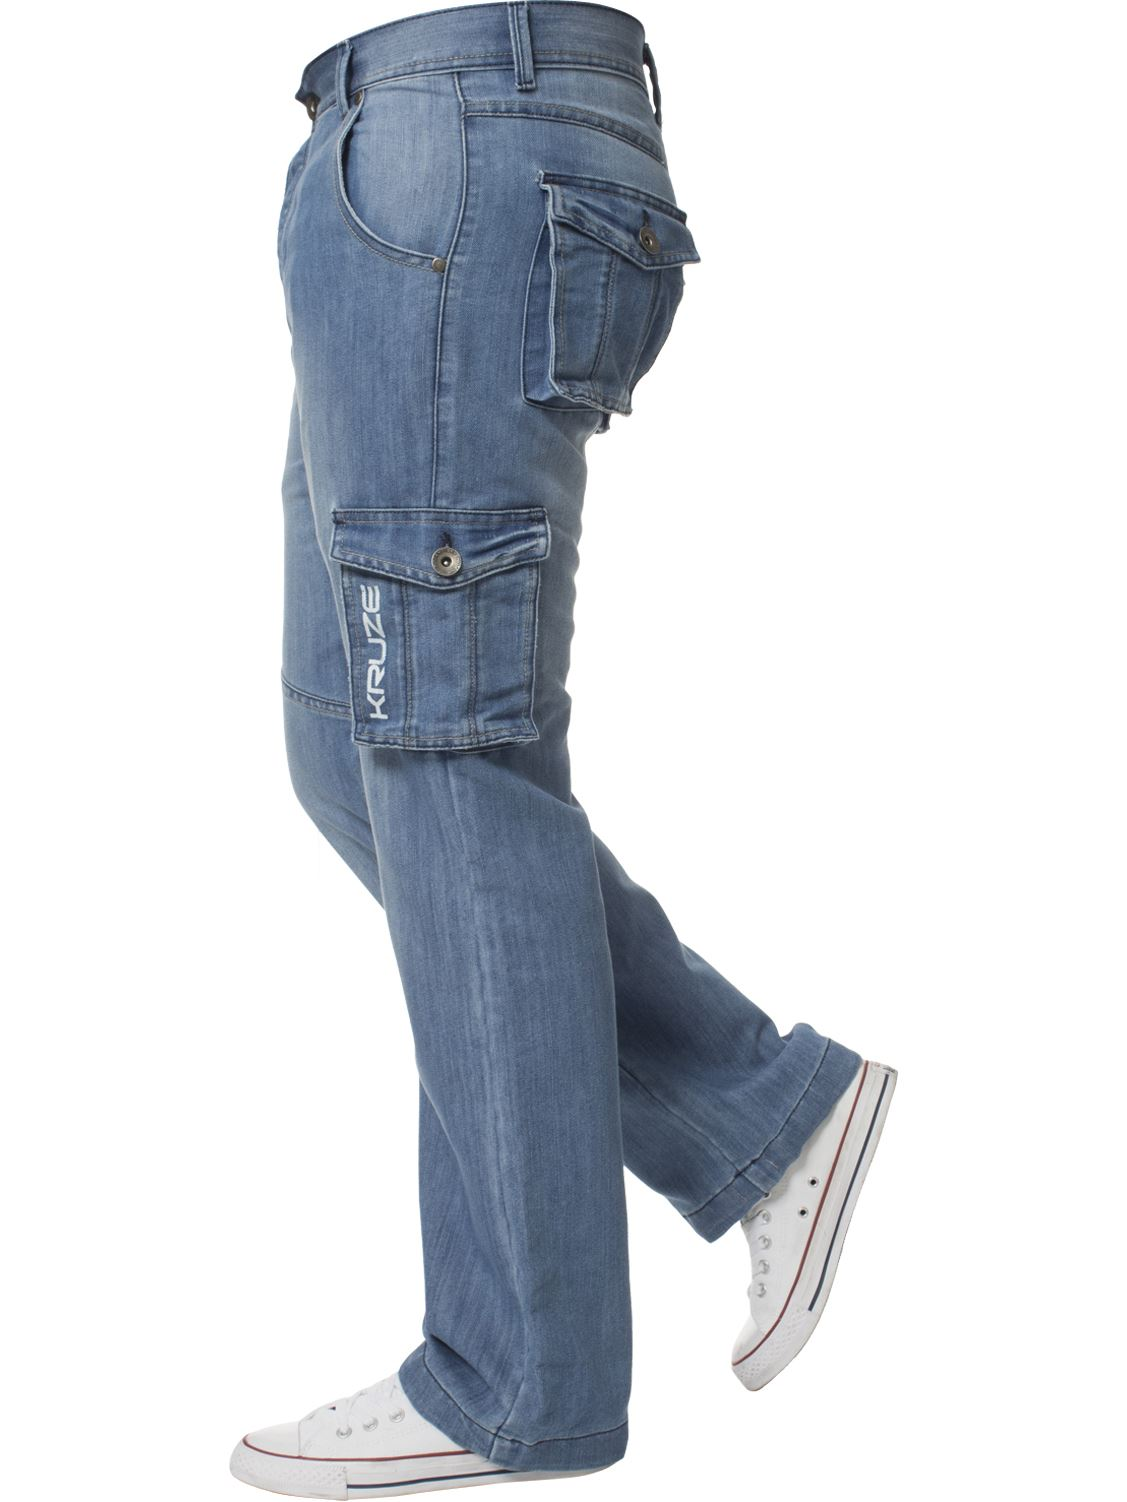 Mens-Cargo-Jeans-Combat-Trousers-Heavy-Duty-Work-Casual-Big-Tall-Denim-Pants thumbnail 78